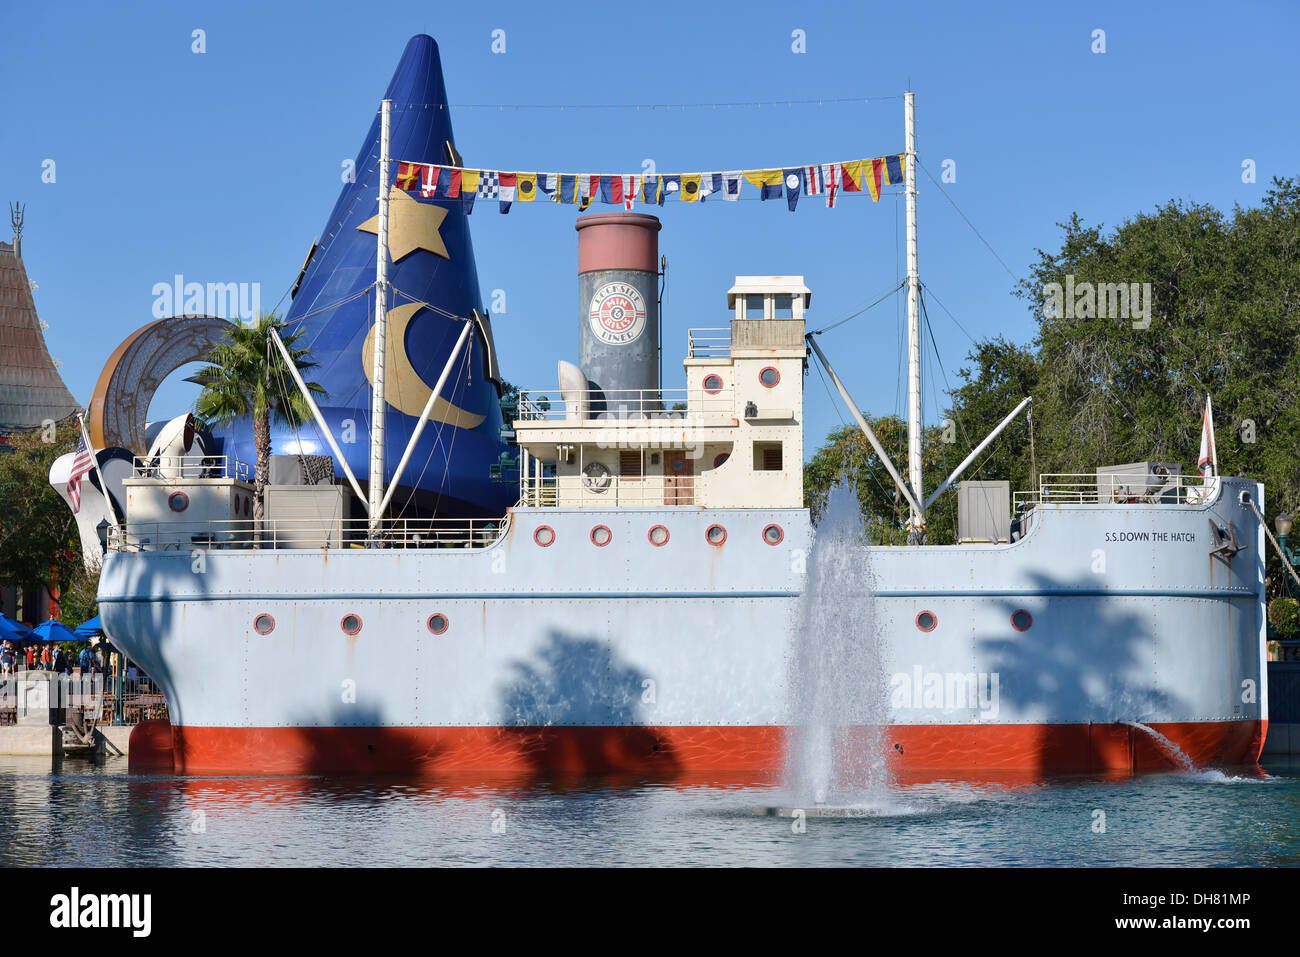 Min and Bill's Dockside Diner on Eco Lake at Hollywood Studios, Disney World Resort, Orlando Florida - Stock Image